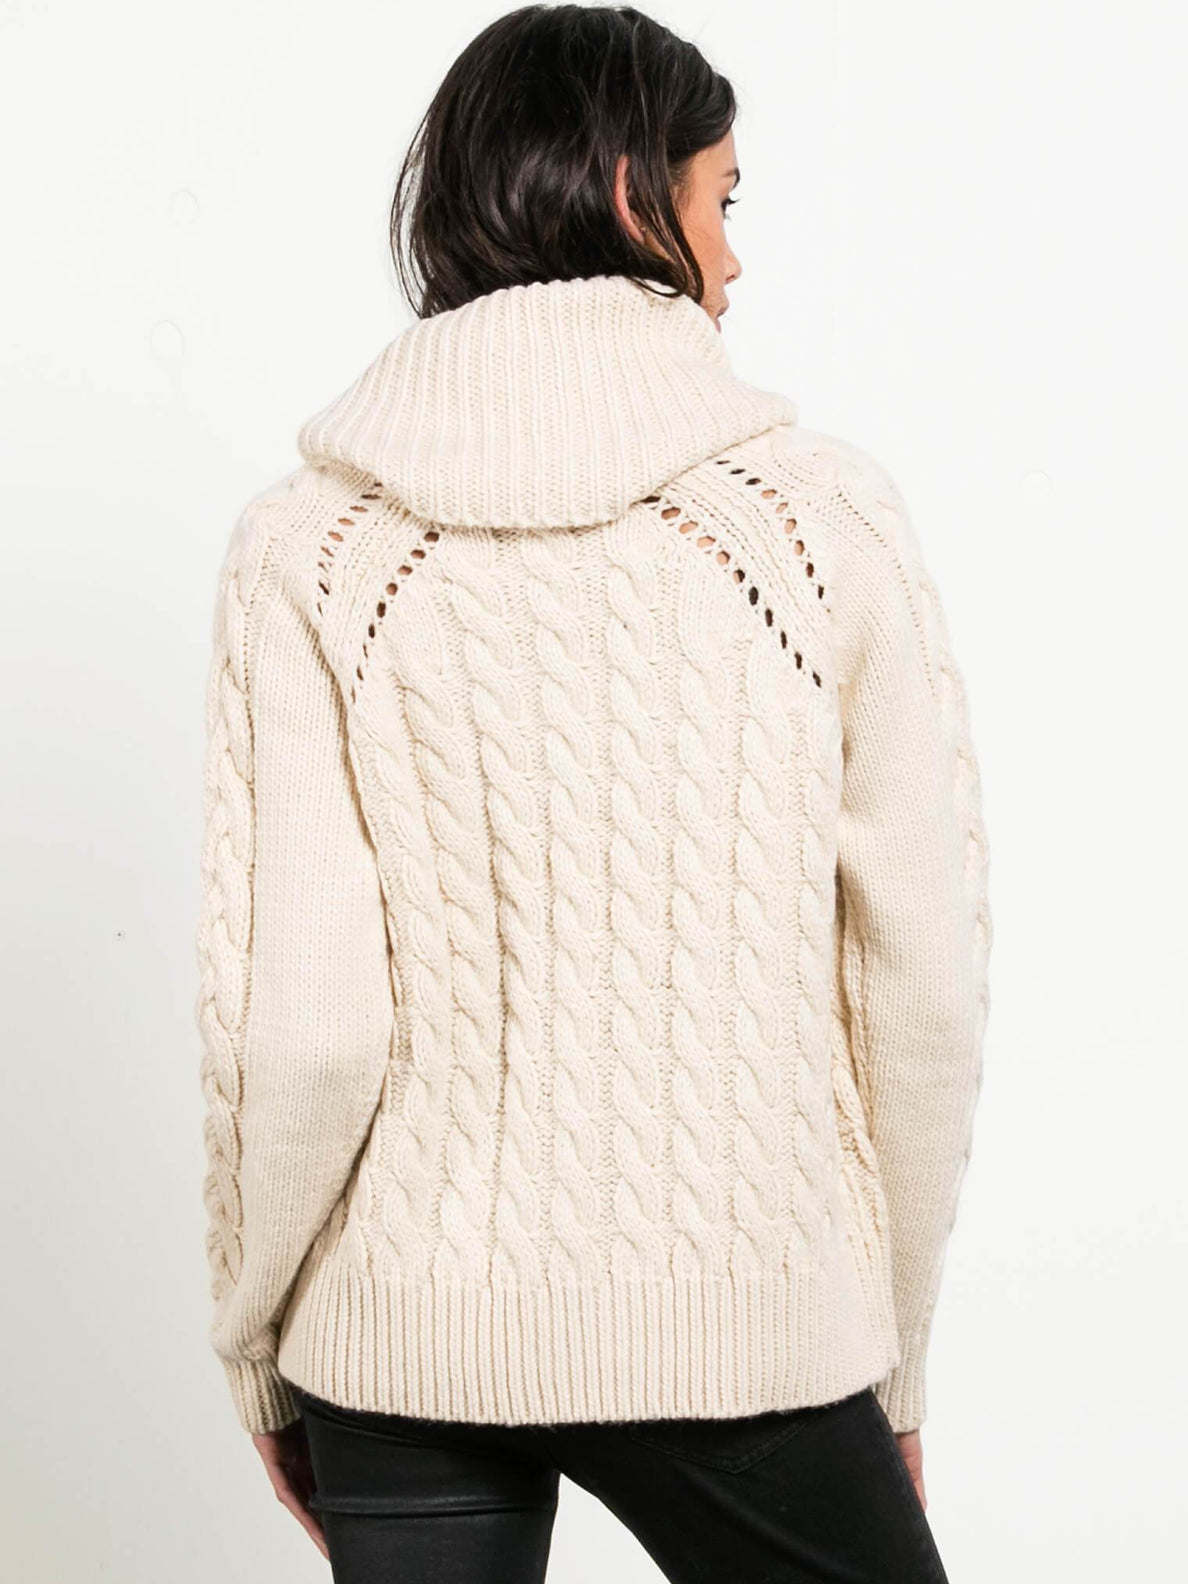 Snooders Sweater In Oatmeal, Back View